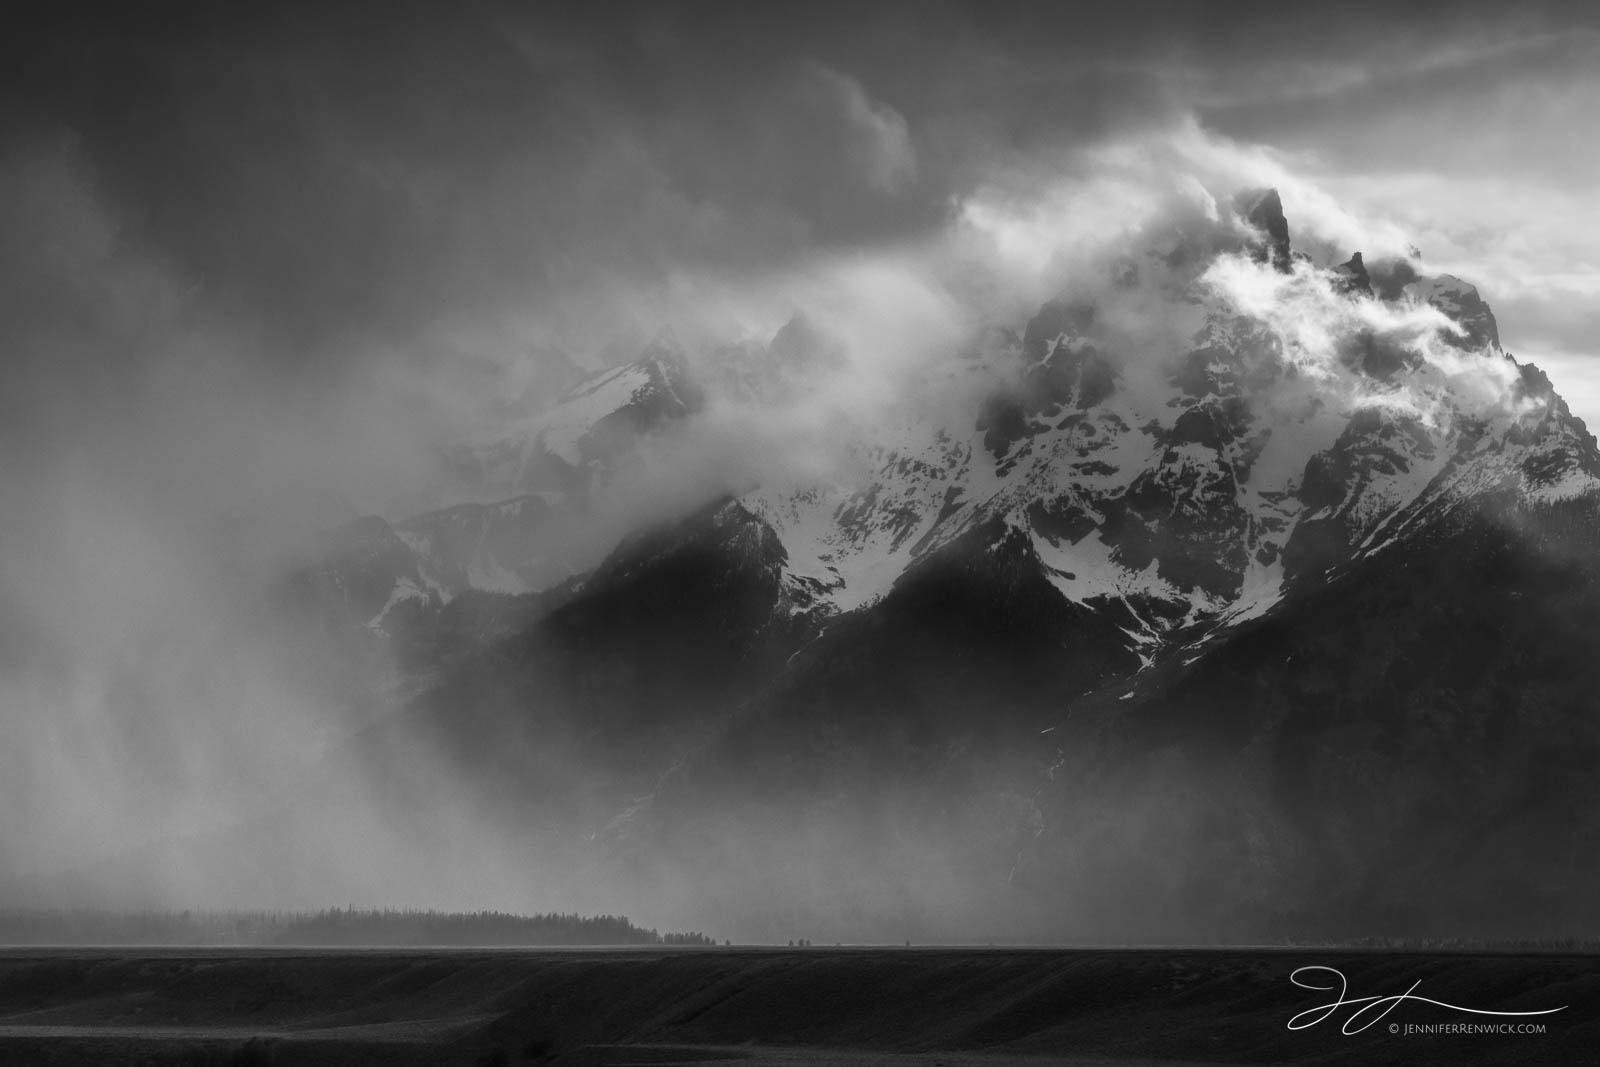 A storm clears and reveals the peaks of the Grand Tetons.